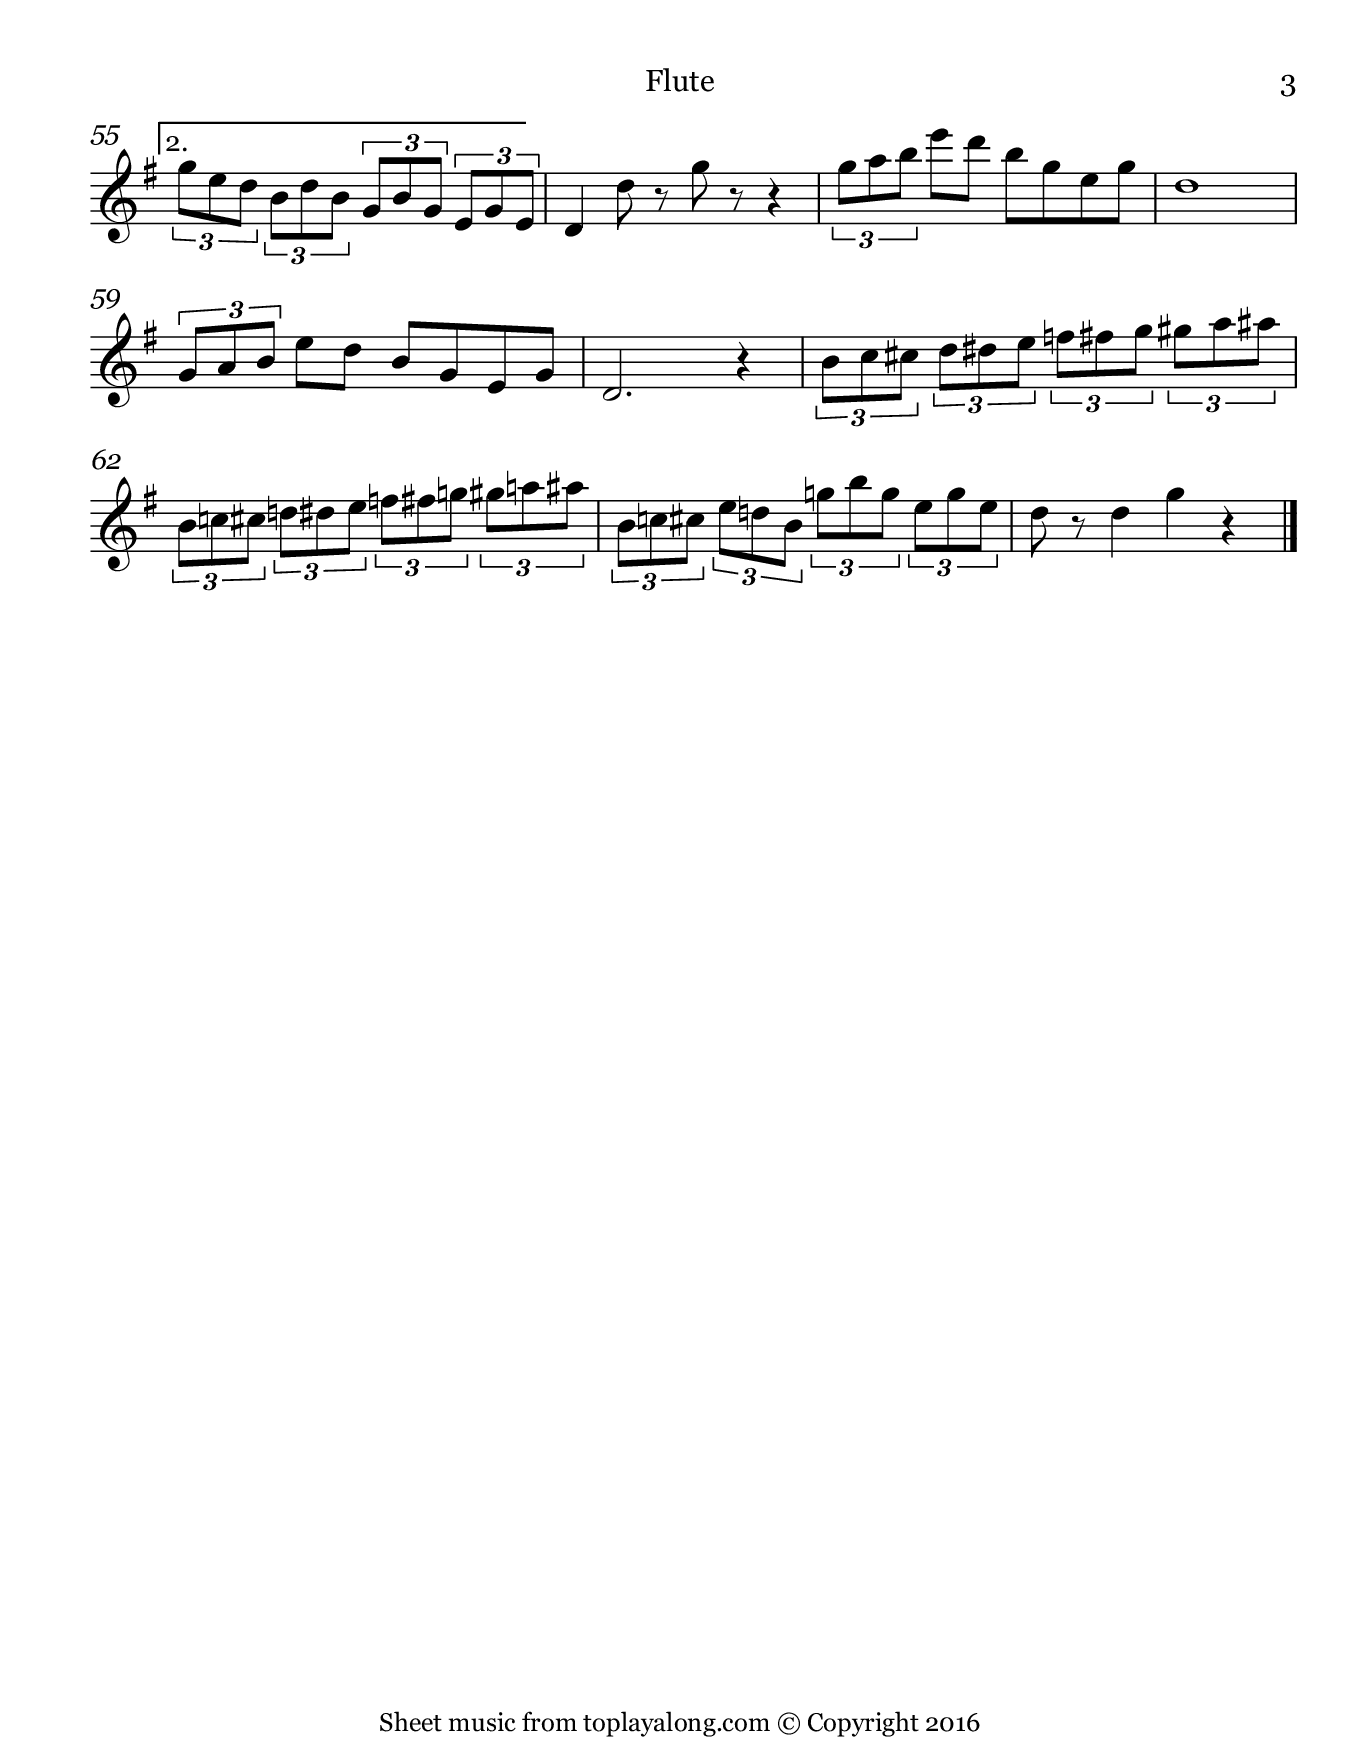 Nola by Arndt. Sheet music for Flute, page 3.